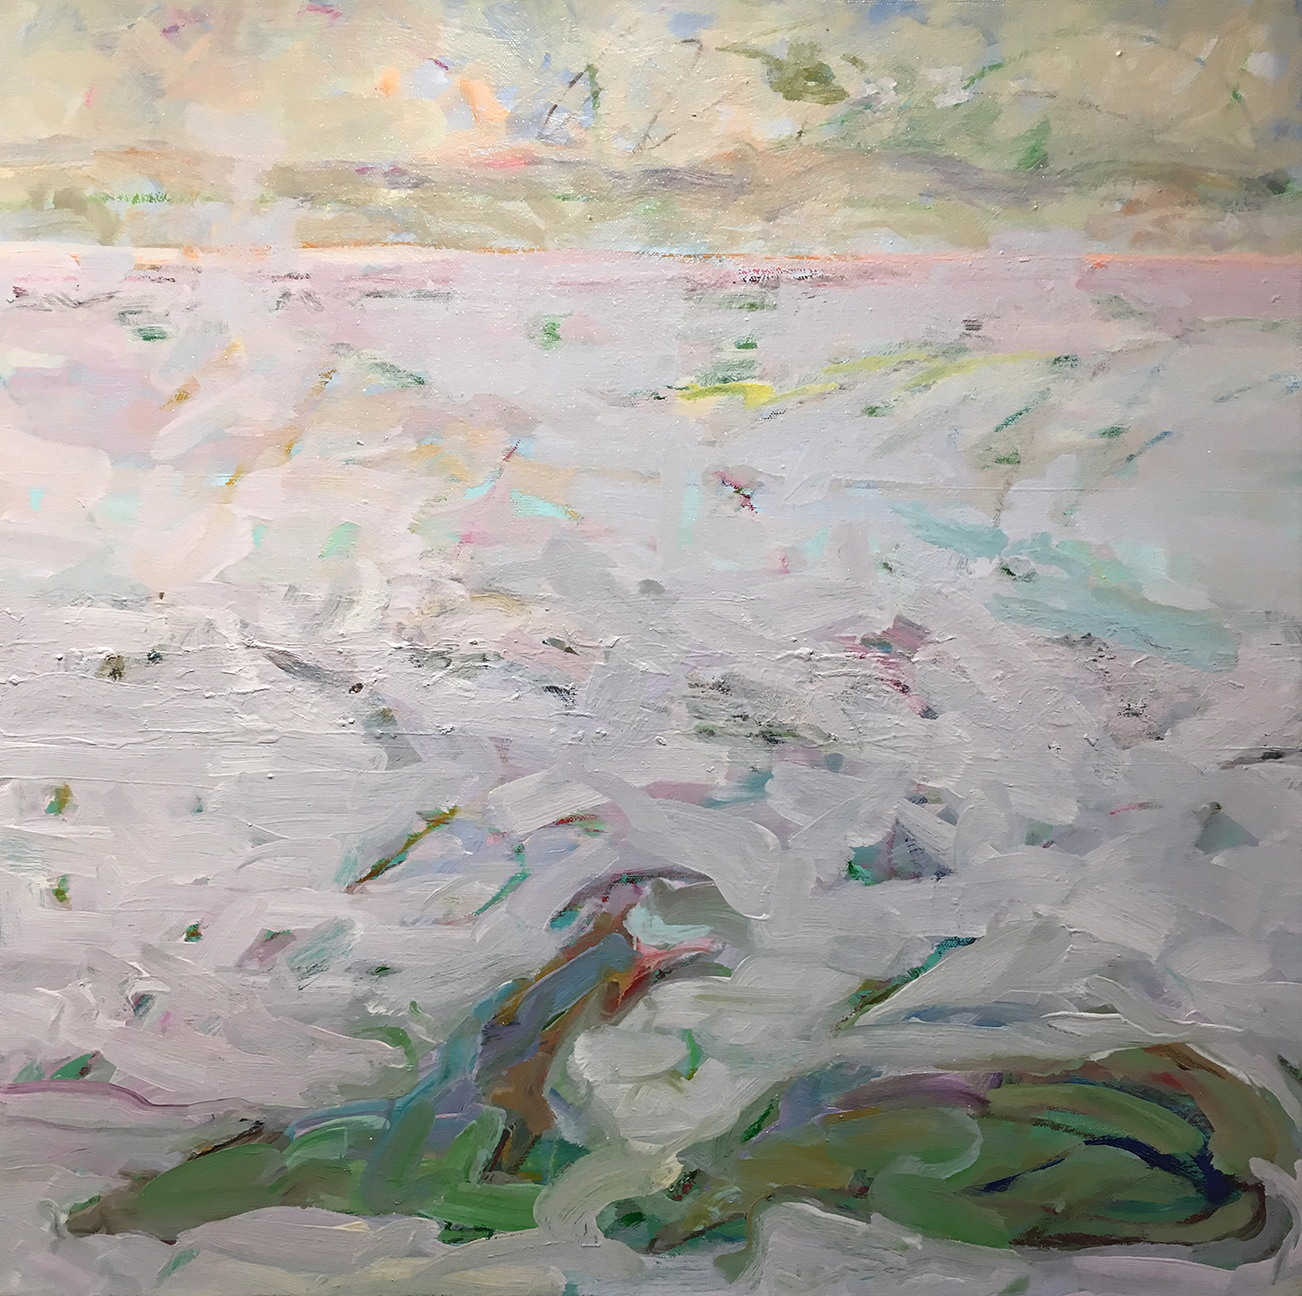 Mountain Lake 27, Oilcanvas, 24x24MelSmothers2015, low res.jpg